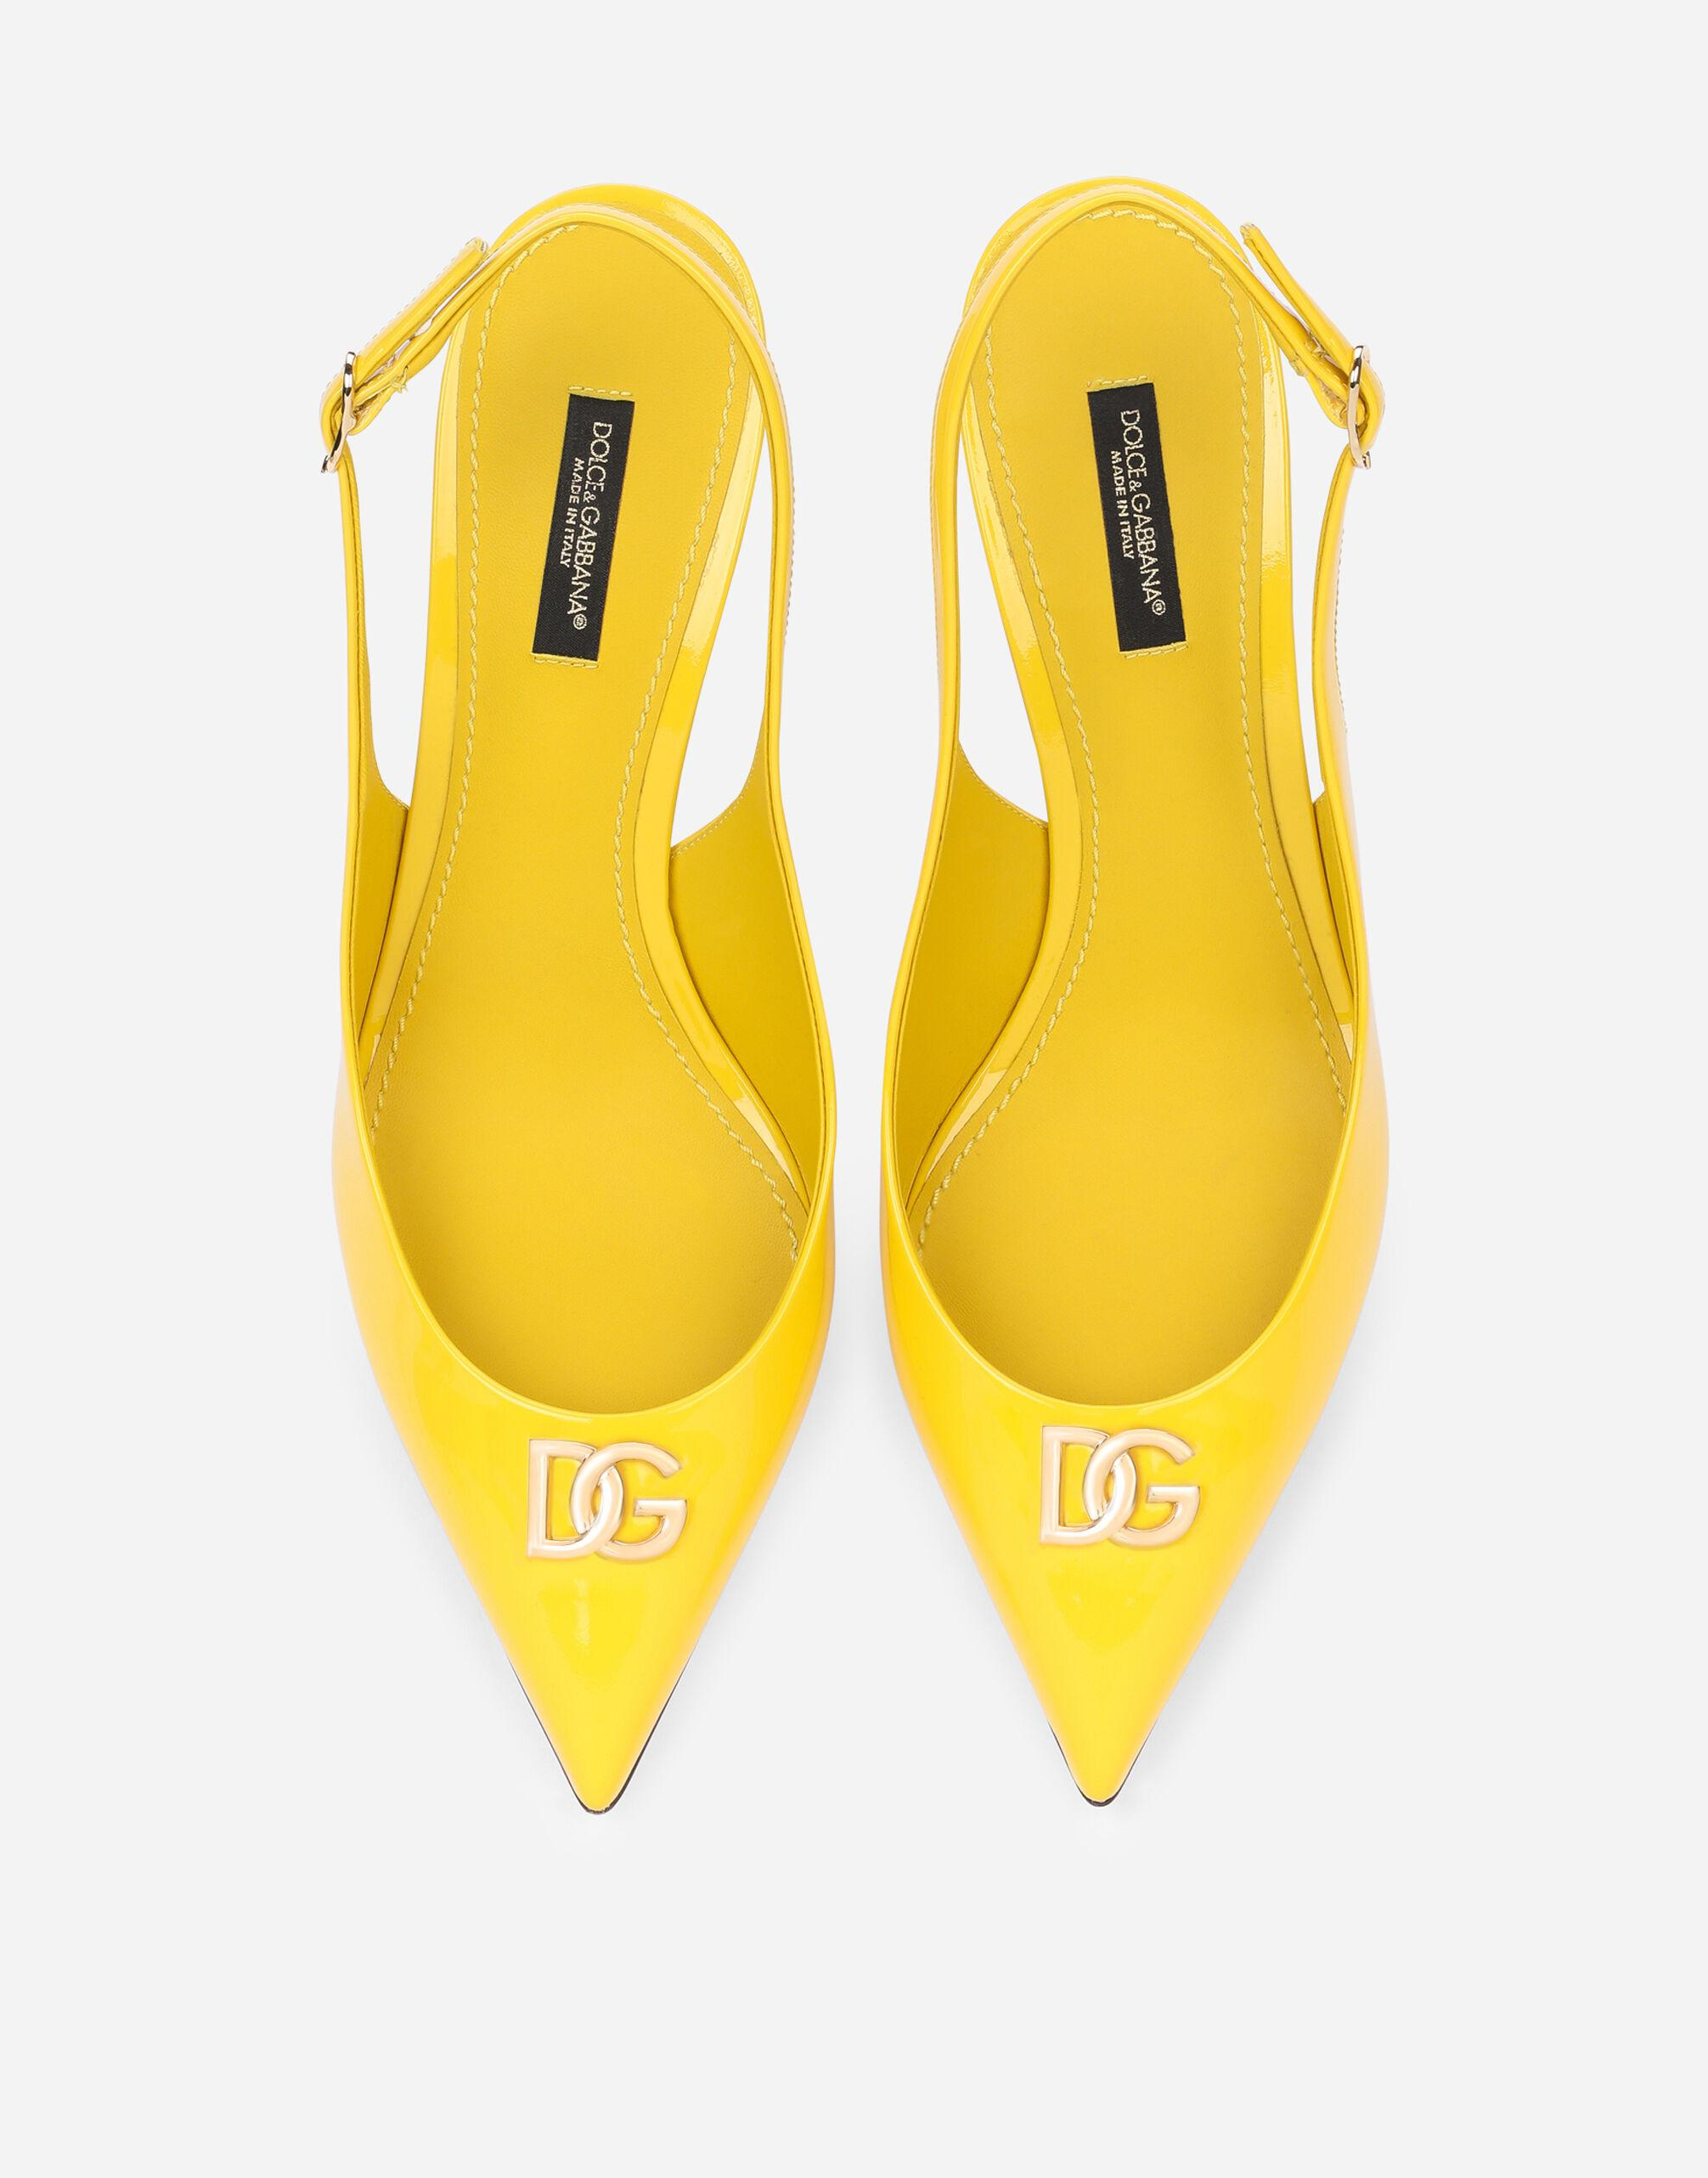 Patent leather slingbacks with DG logo 3